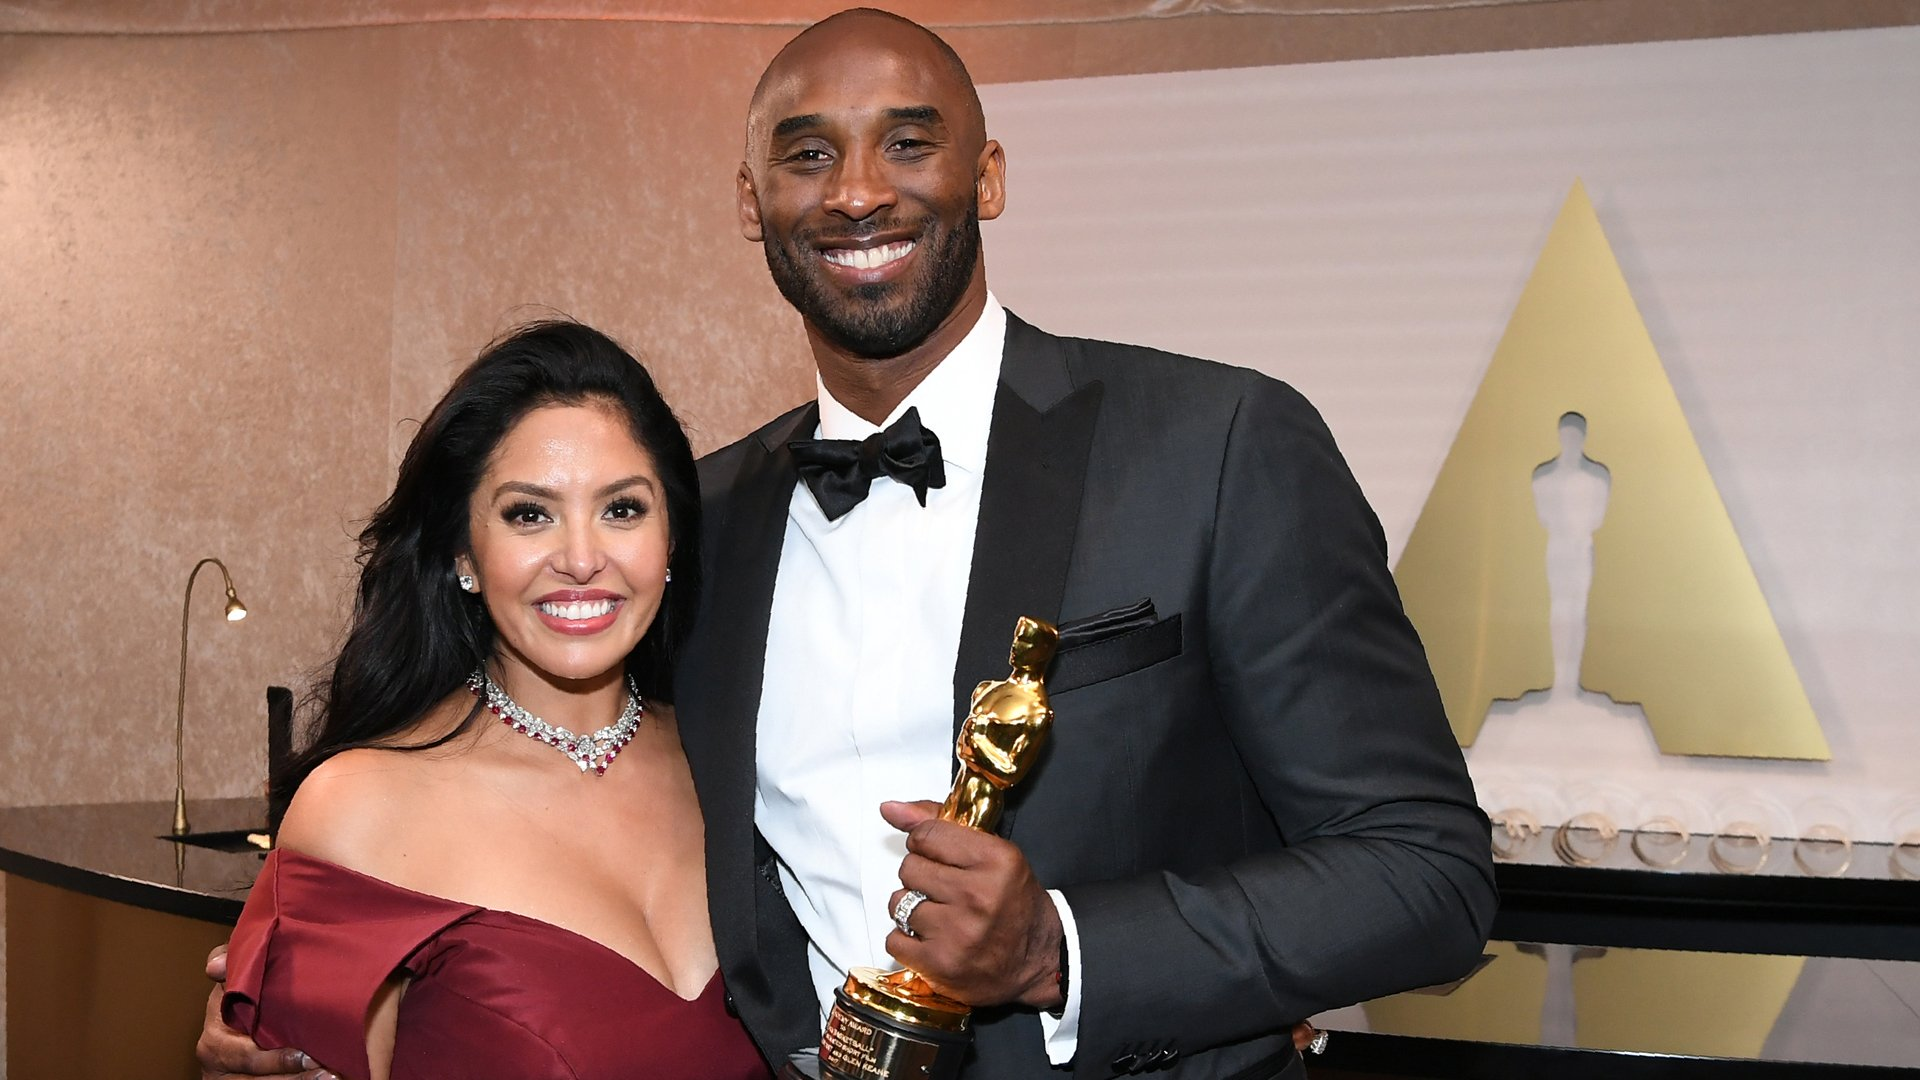 Kobe Bryant anf his wife Vanessa Bryant attend the 90th Annual Academy Awards Governors Ball at the Hollywood & Highland Center on March 4, 2018, in Hollywood.(Credit: ANGELA WEISS/AFP via Getty Images)